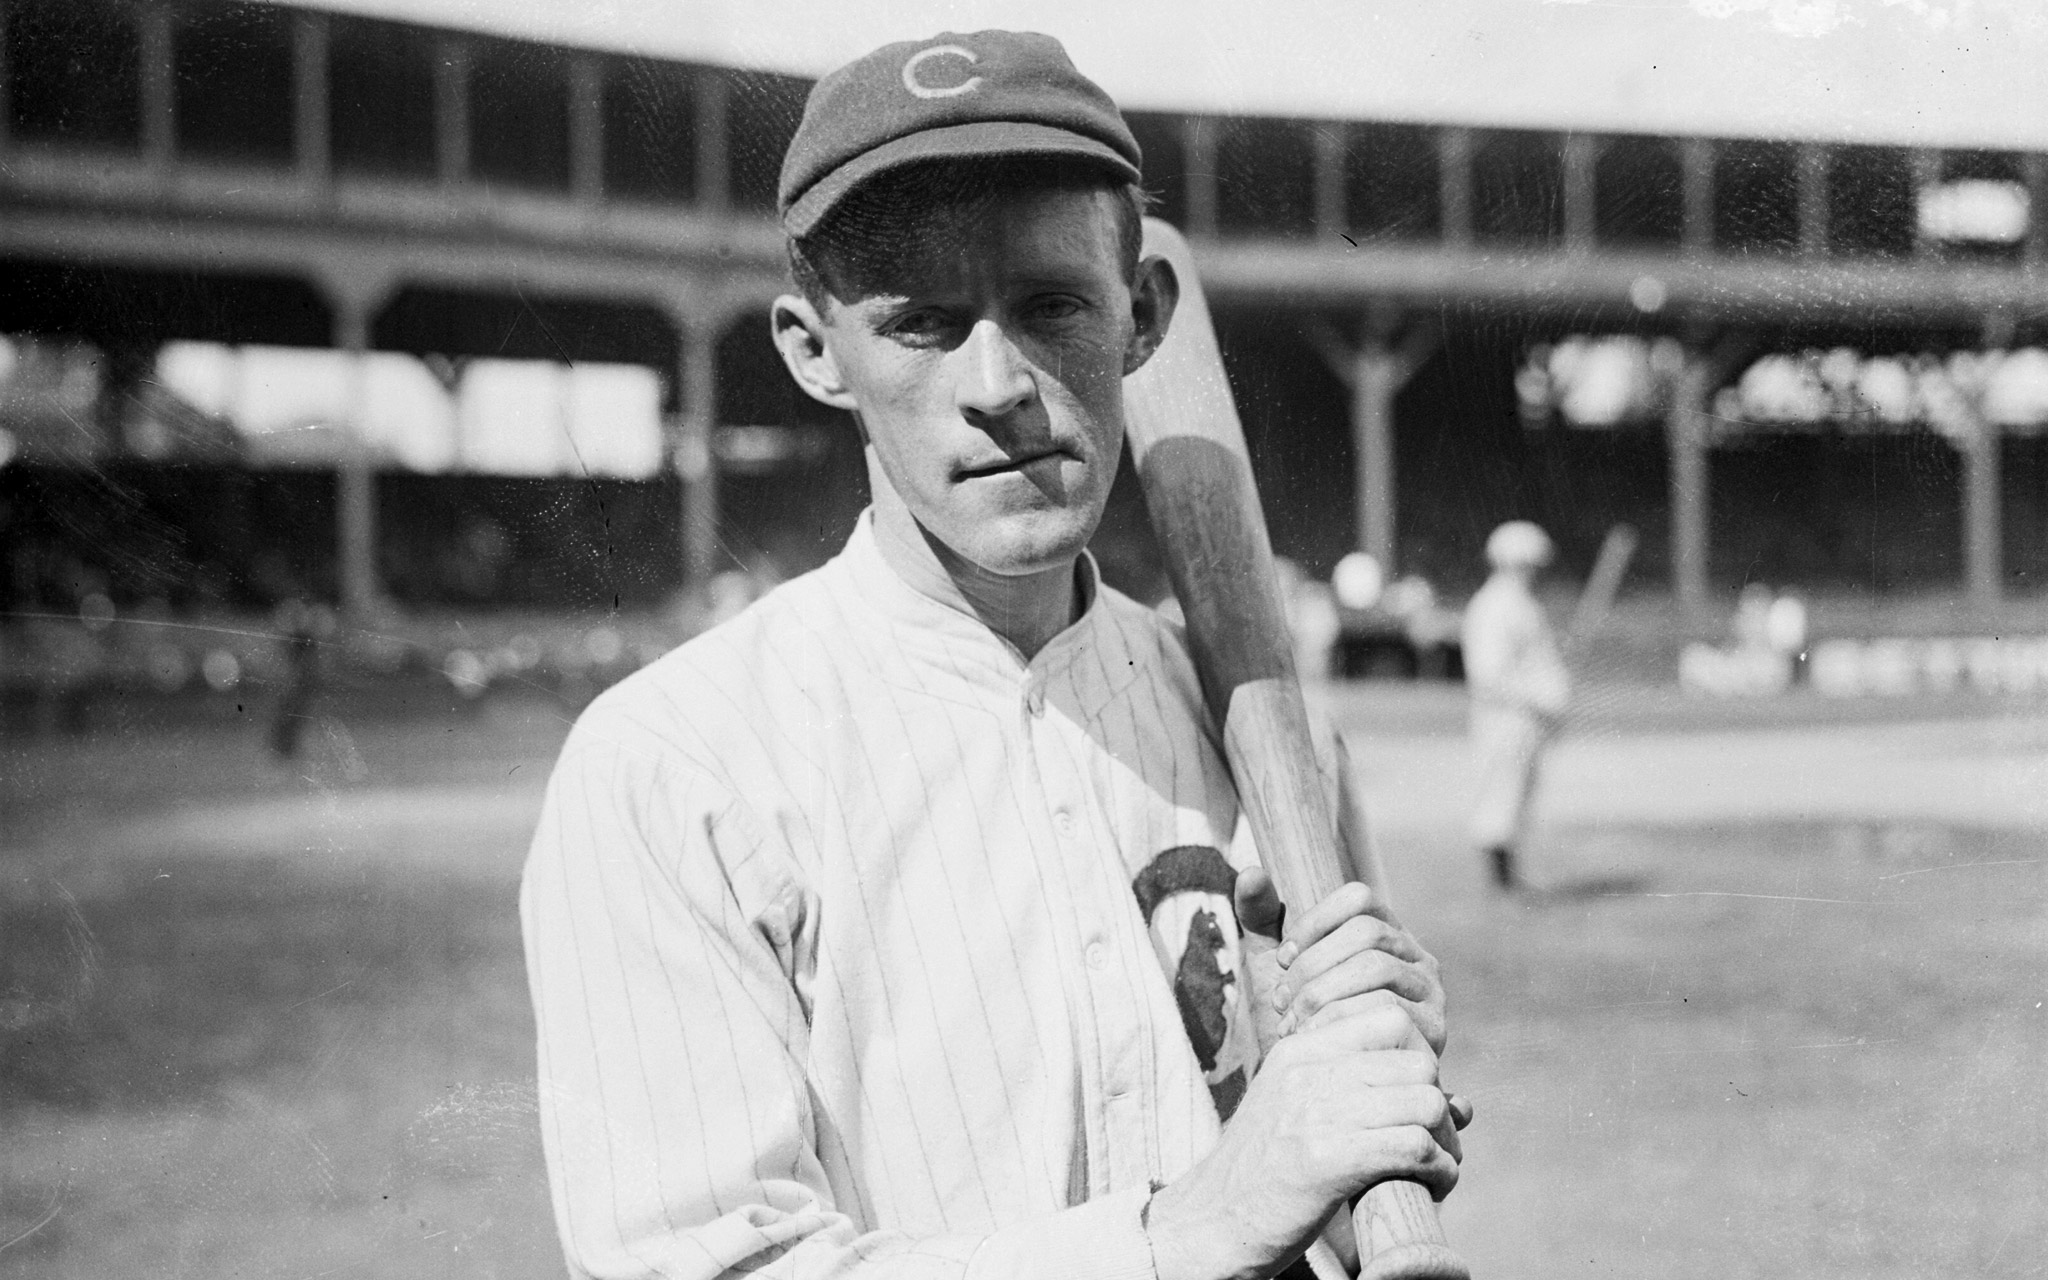 Johnny Evers, 2B